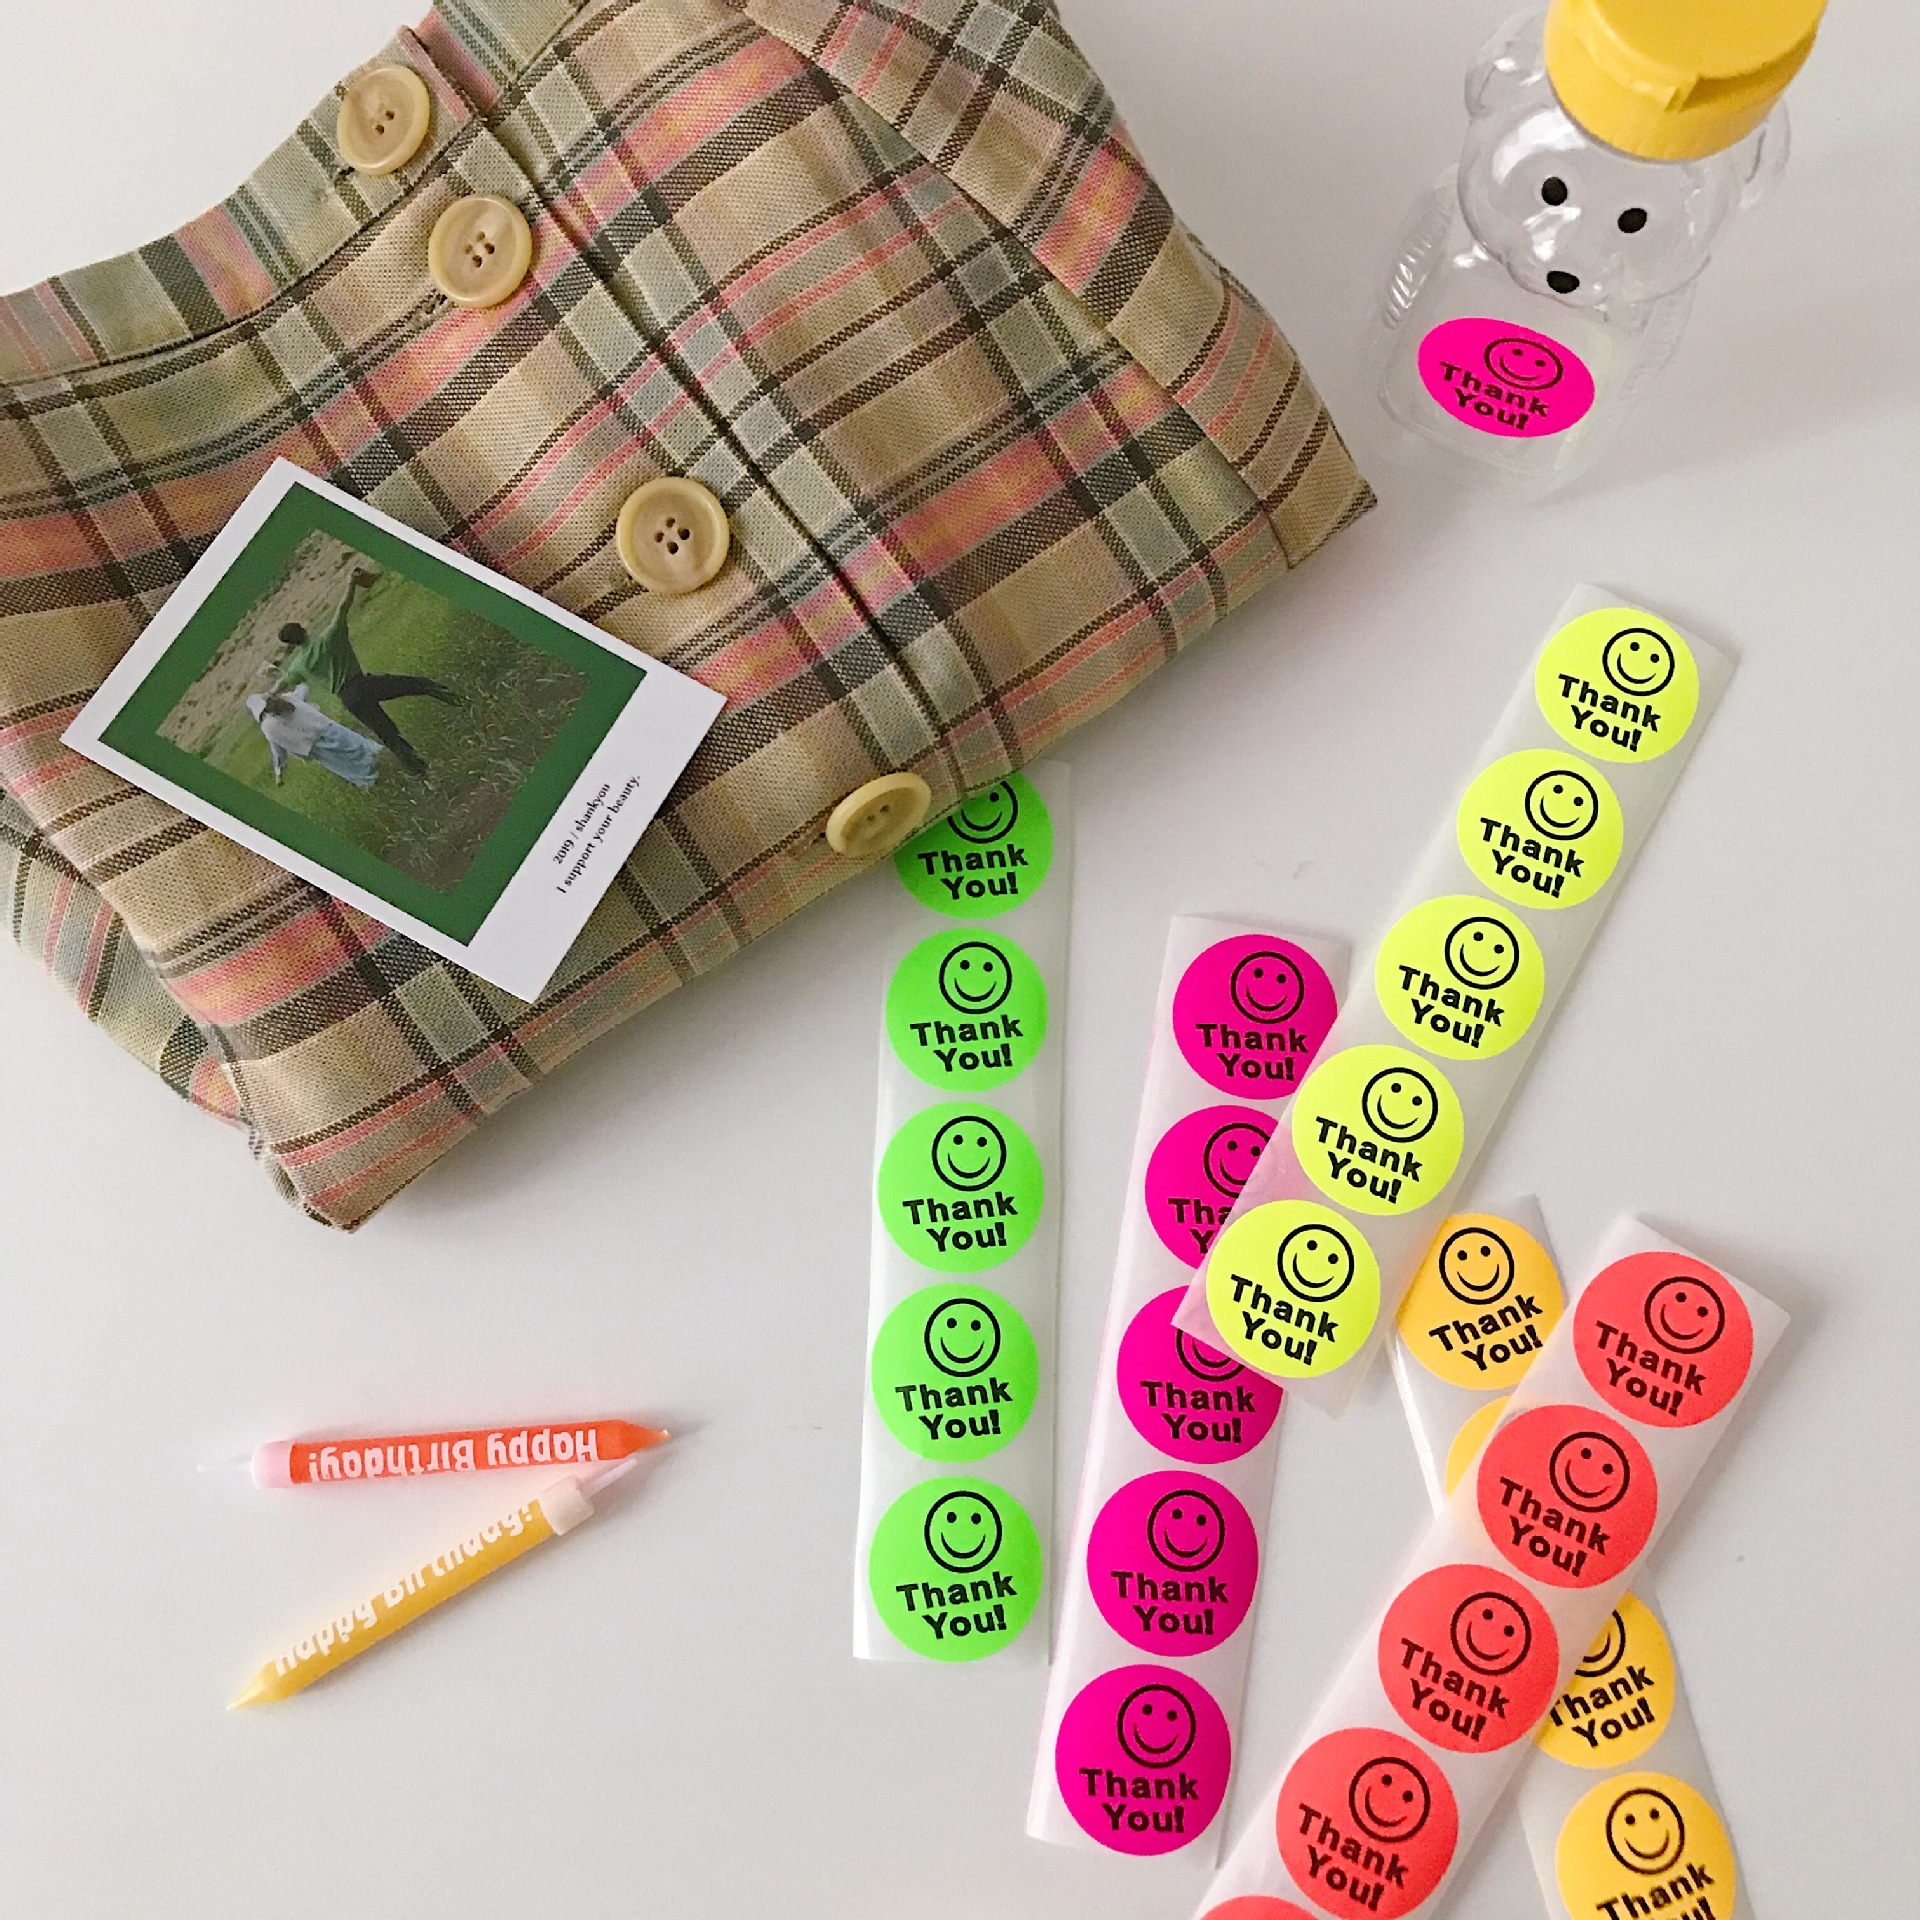 25PCS Cute Smiley Face Fluorescent Stickers DIY Scrapbooking Album Diary Happy Planner Week Decorative Seal Sticker